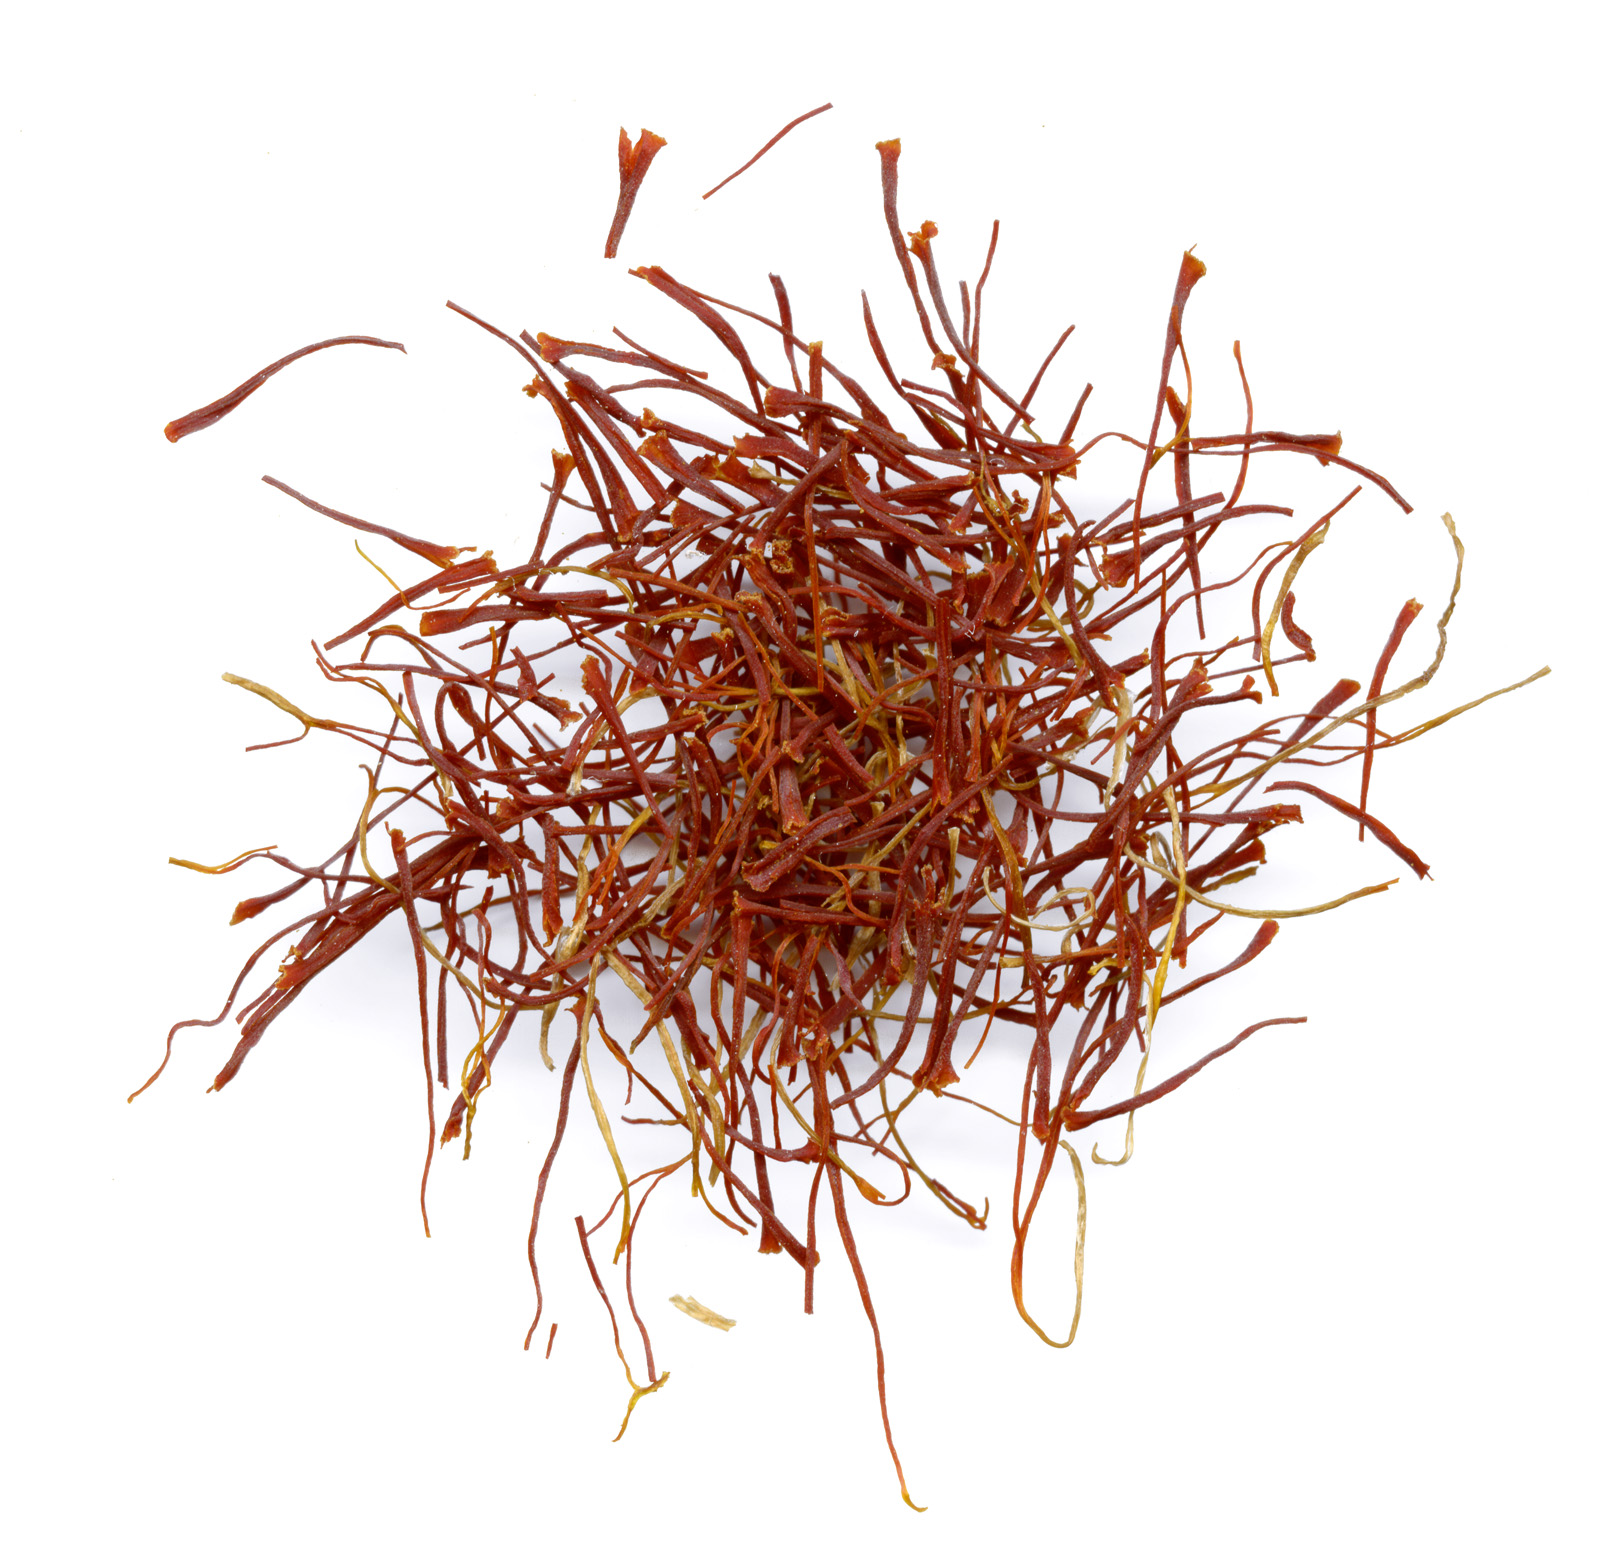 File:Iran saffron threads.jpg - Wikipedia, the free encyclopedia